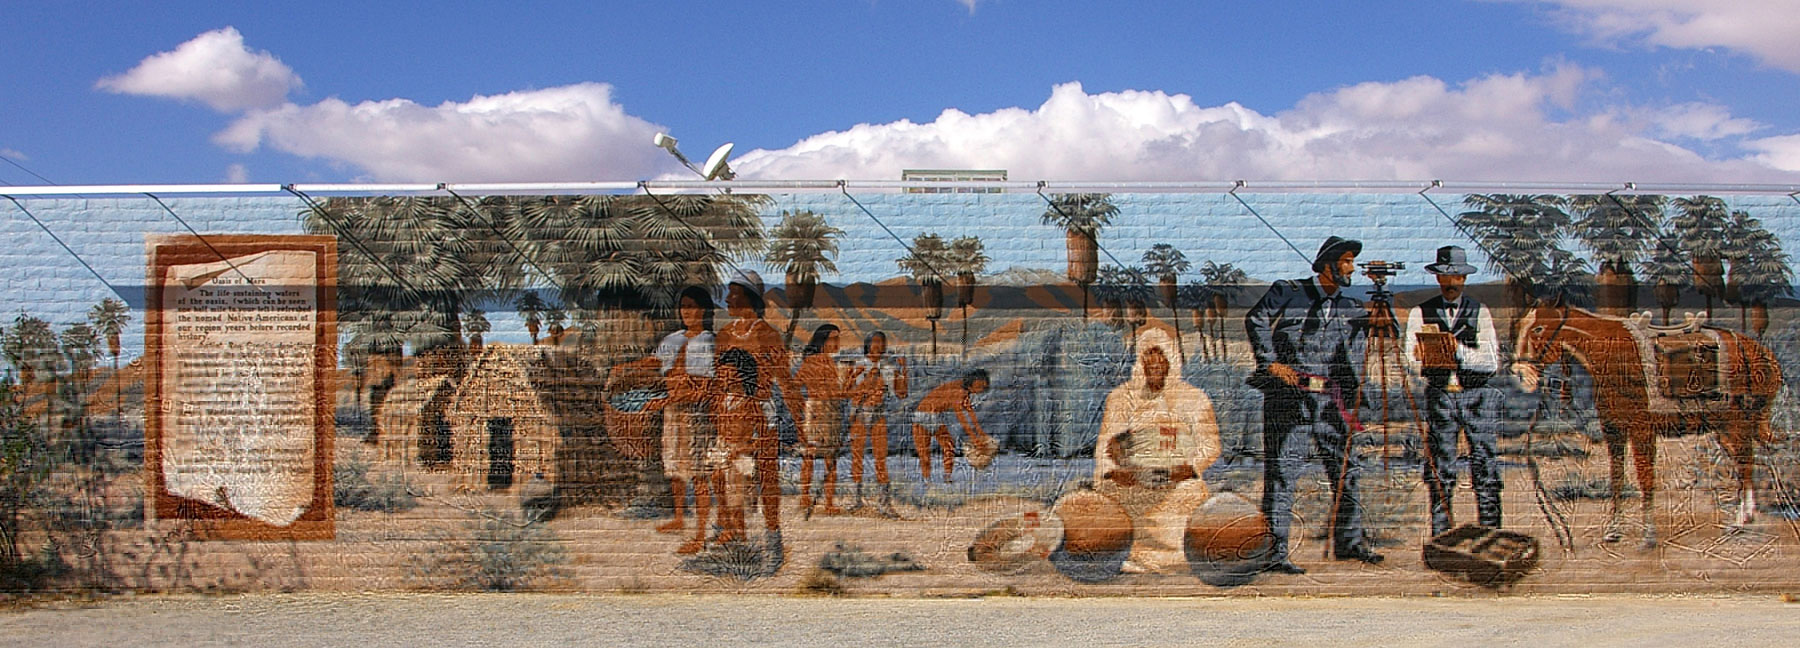 29 Palms Mural of Henry Washington